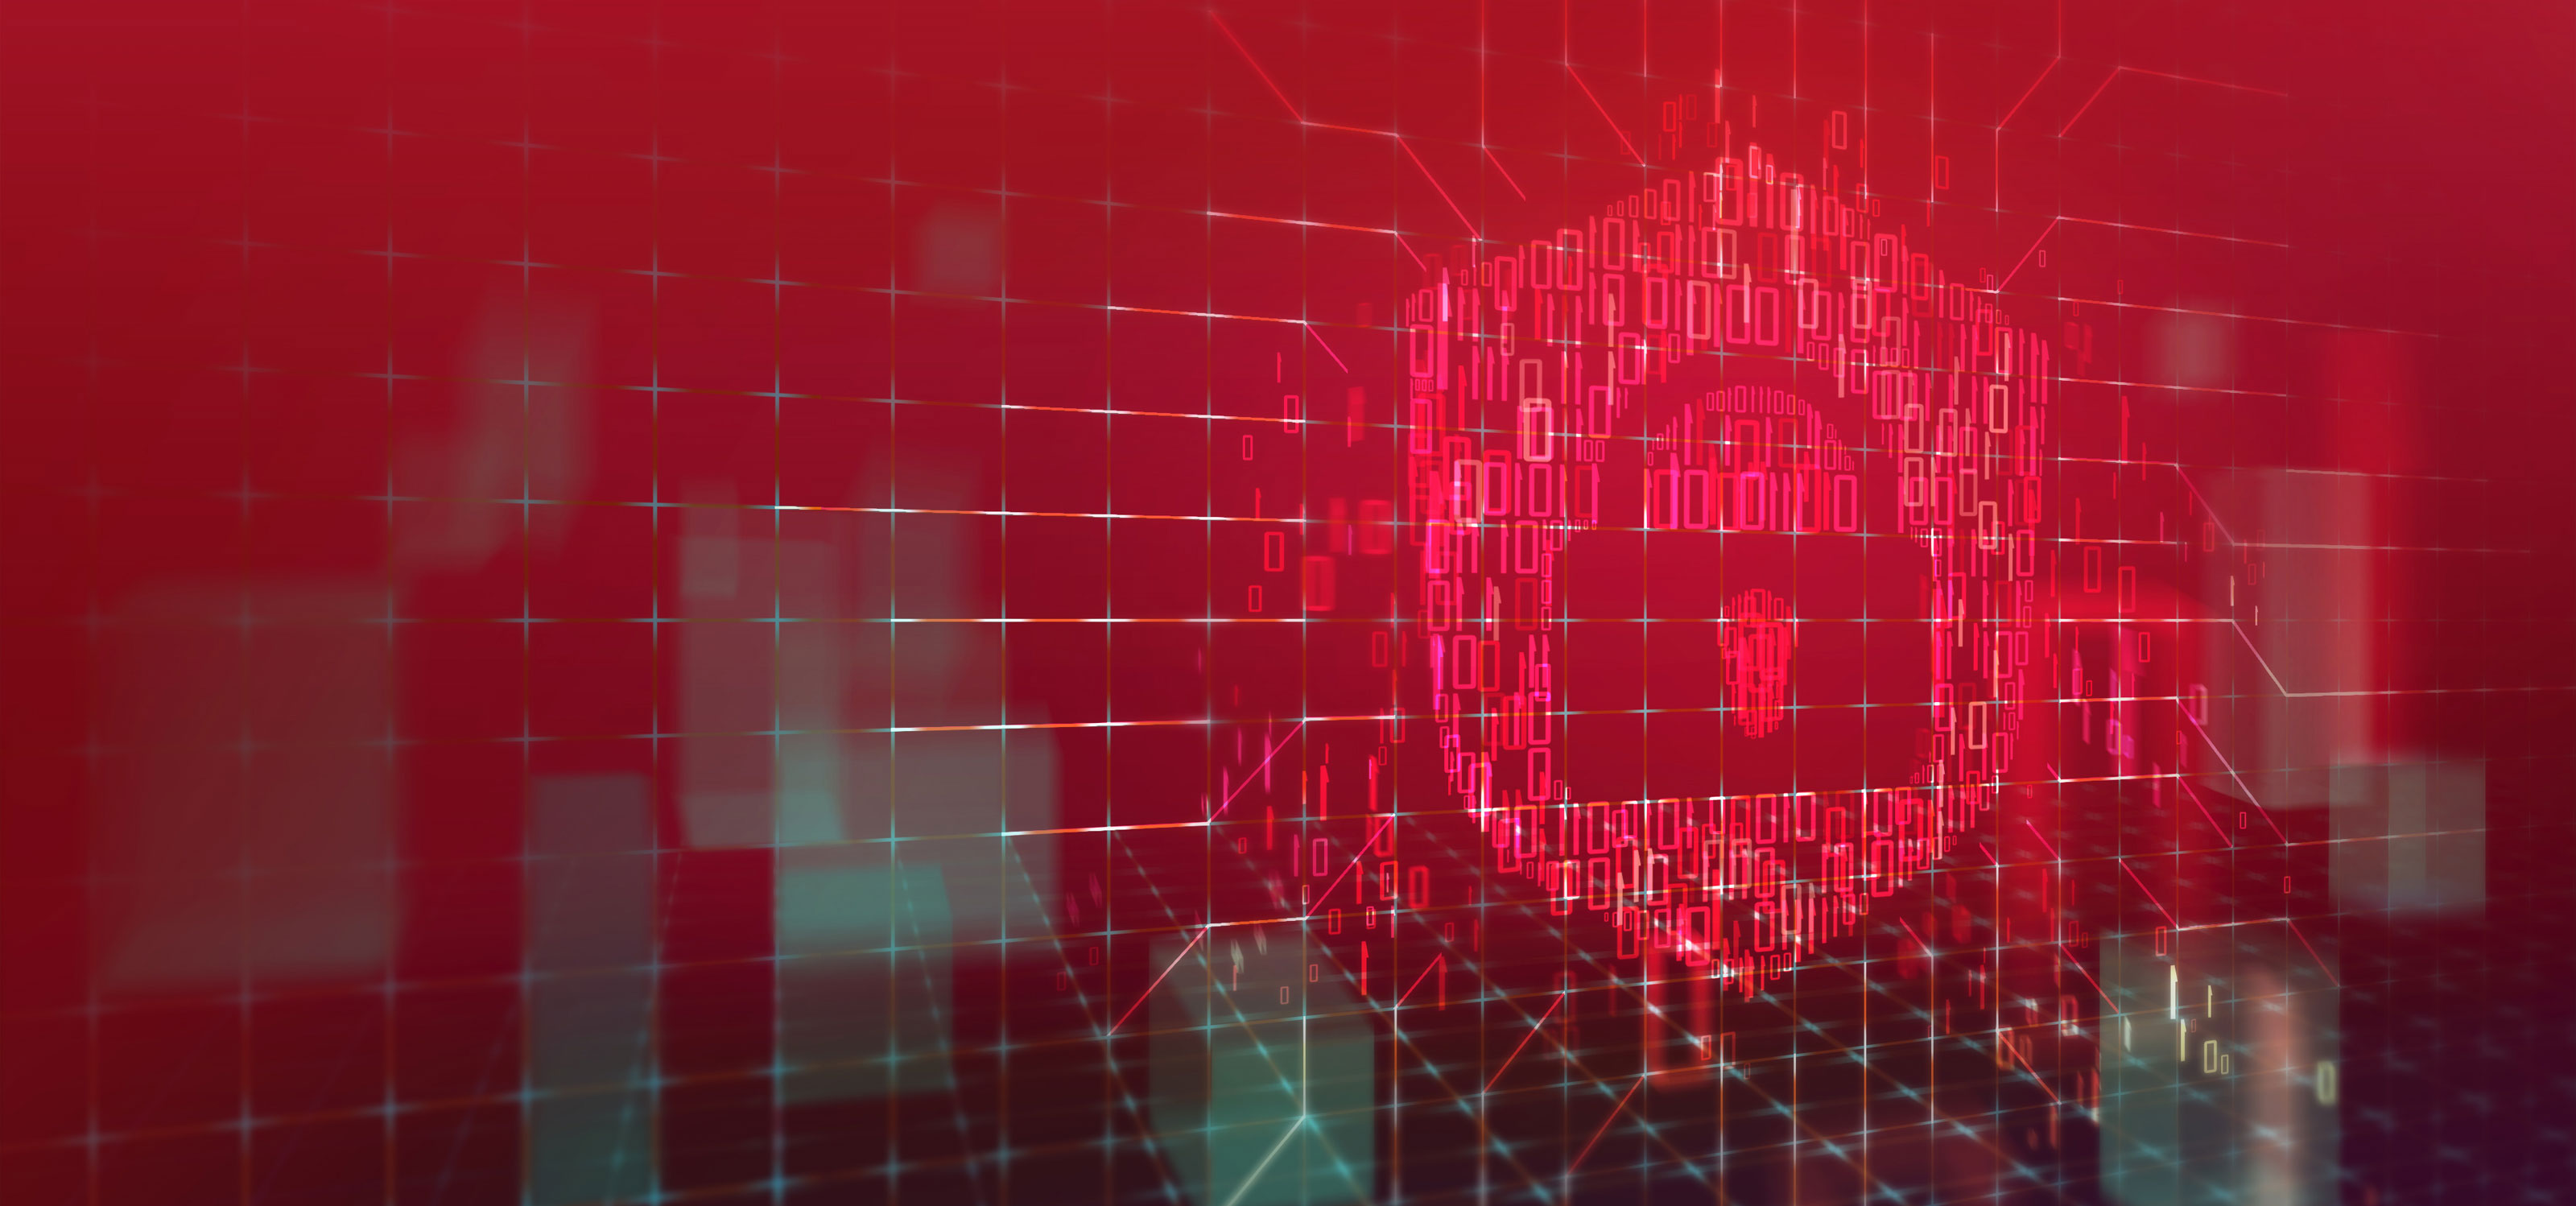 Graphic of red-hued ones and zeroes forming the image of a padlock against a red, abstract background.